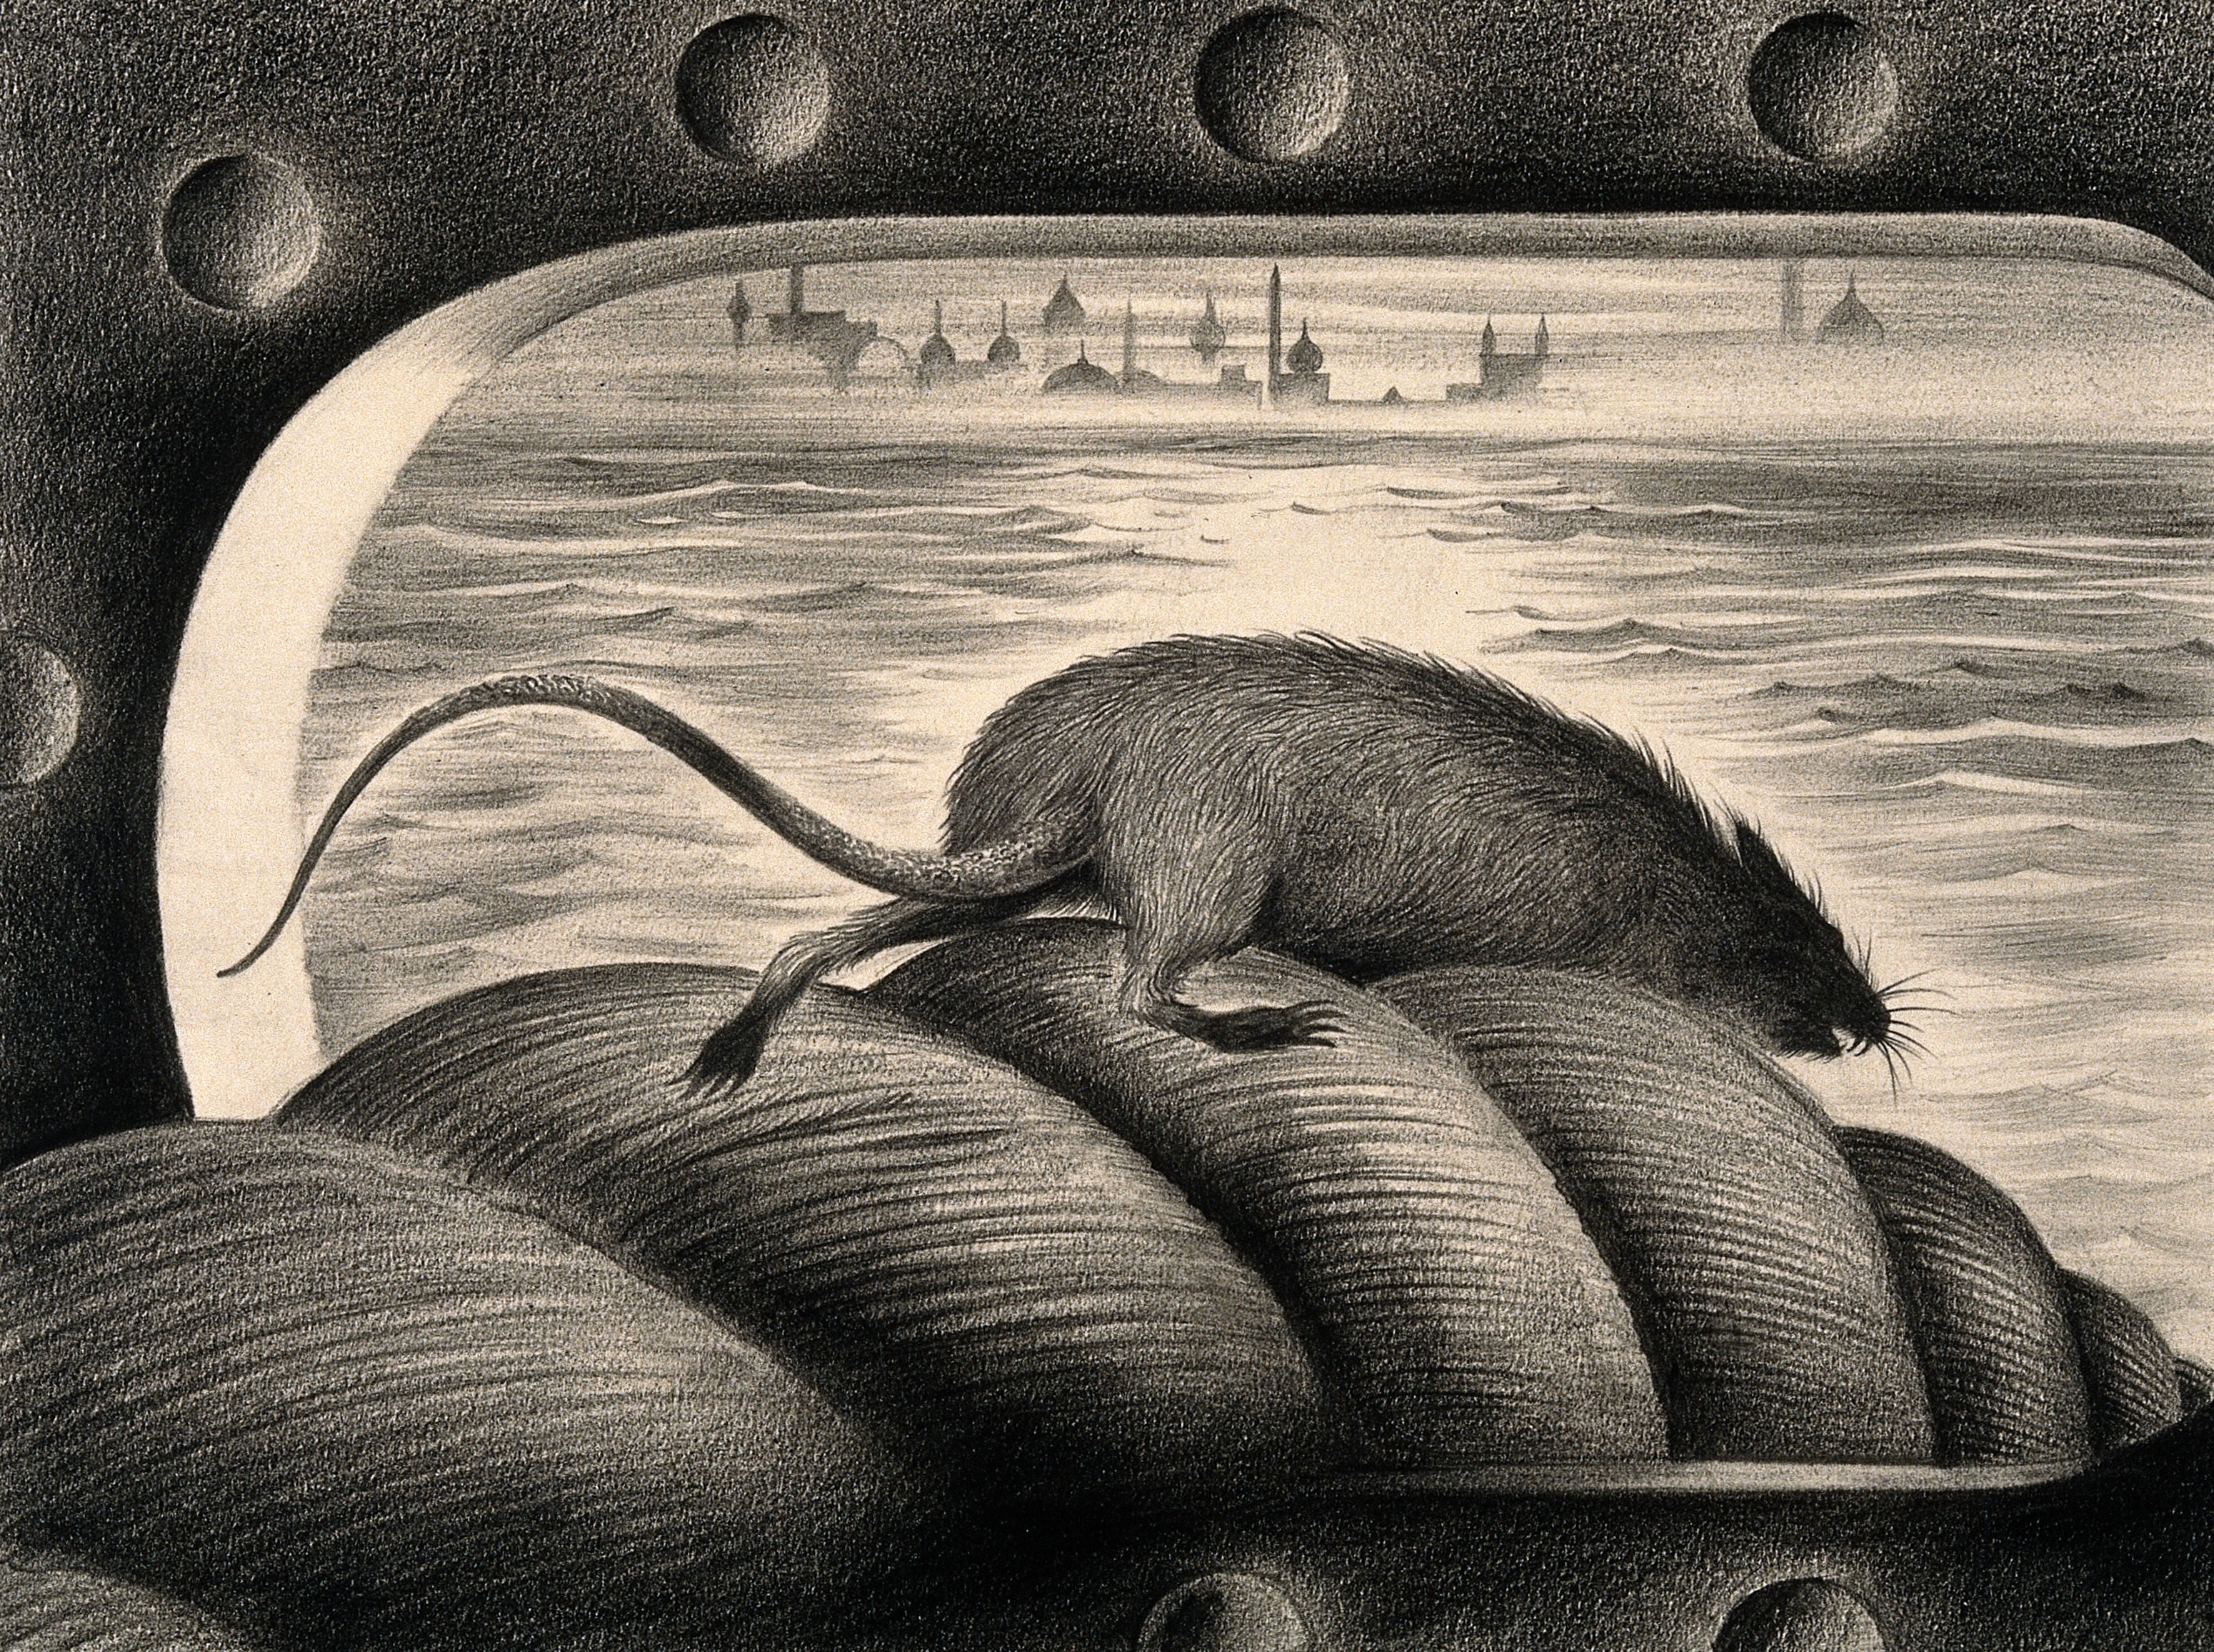 An image of a rat leaving a ship.